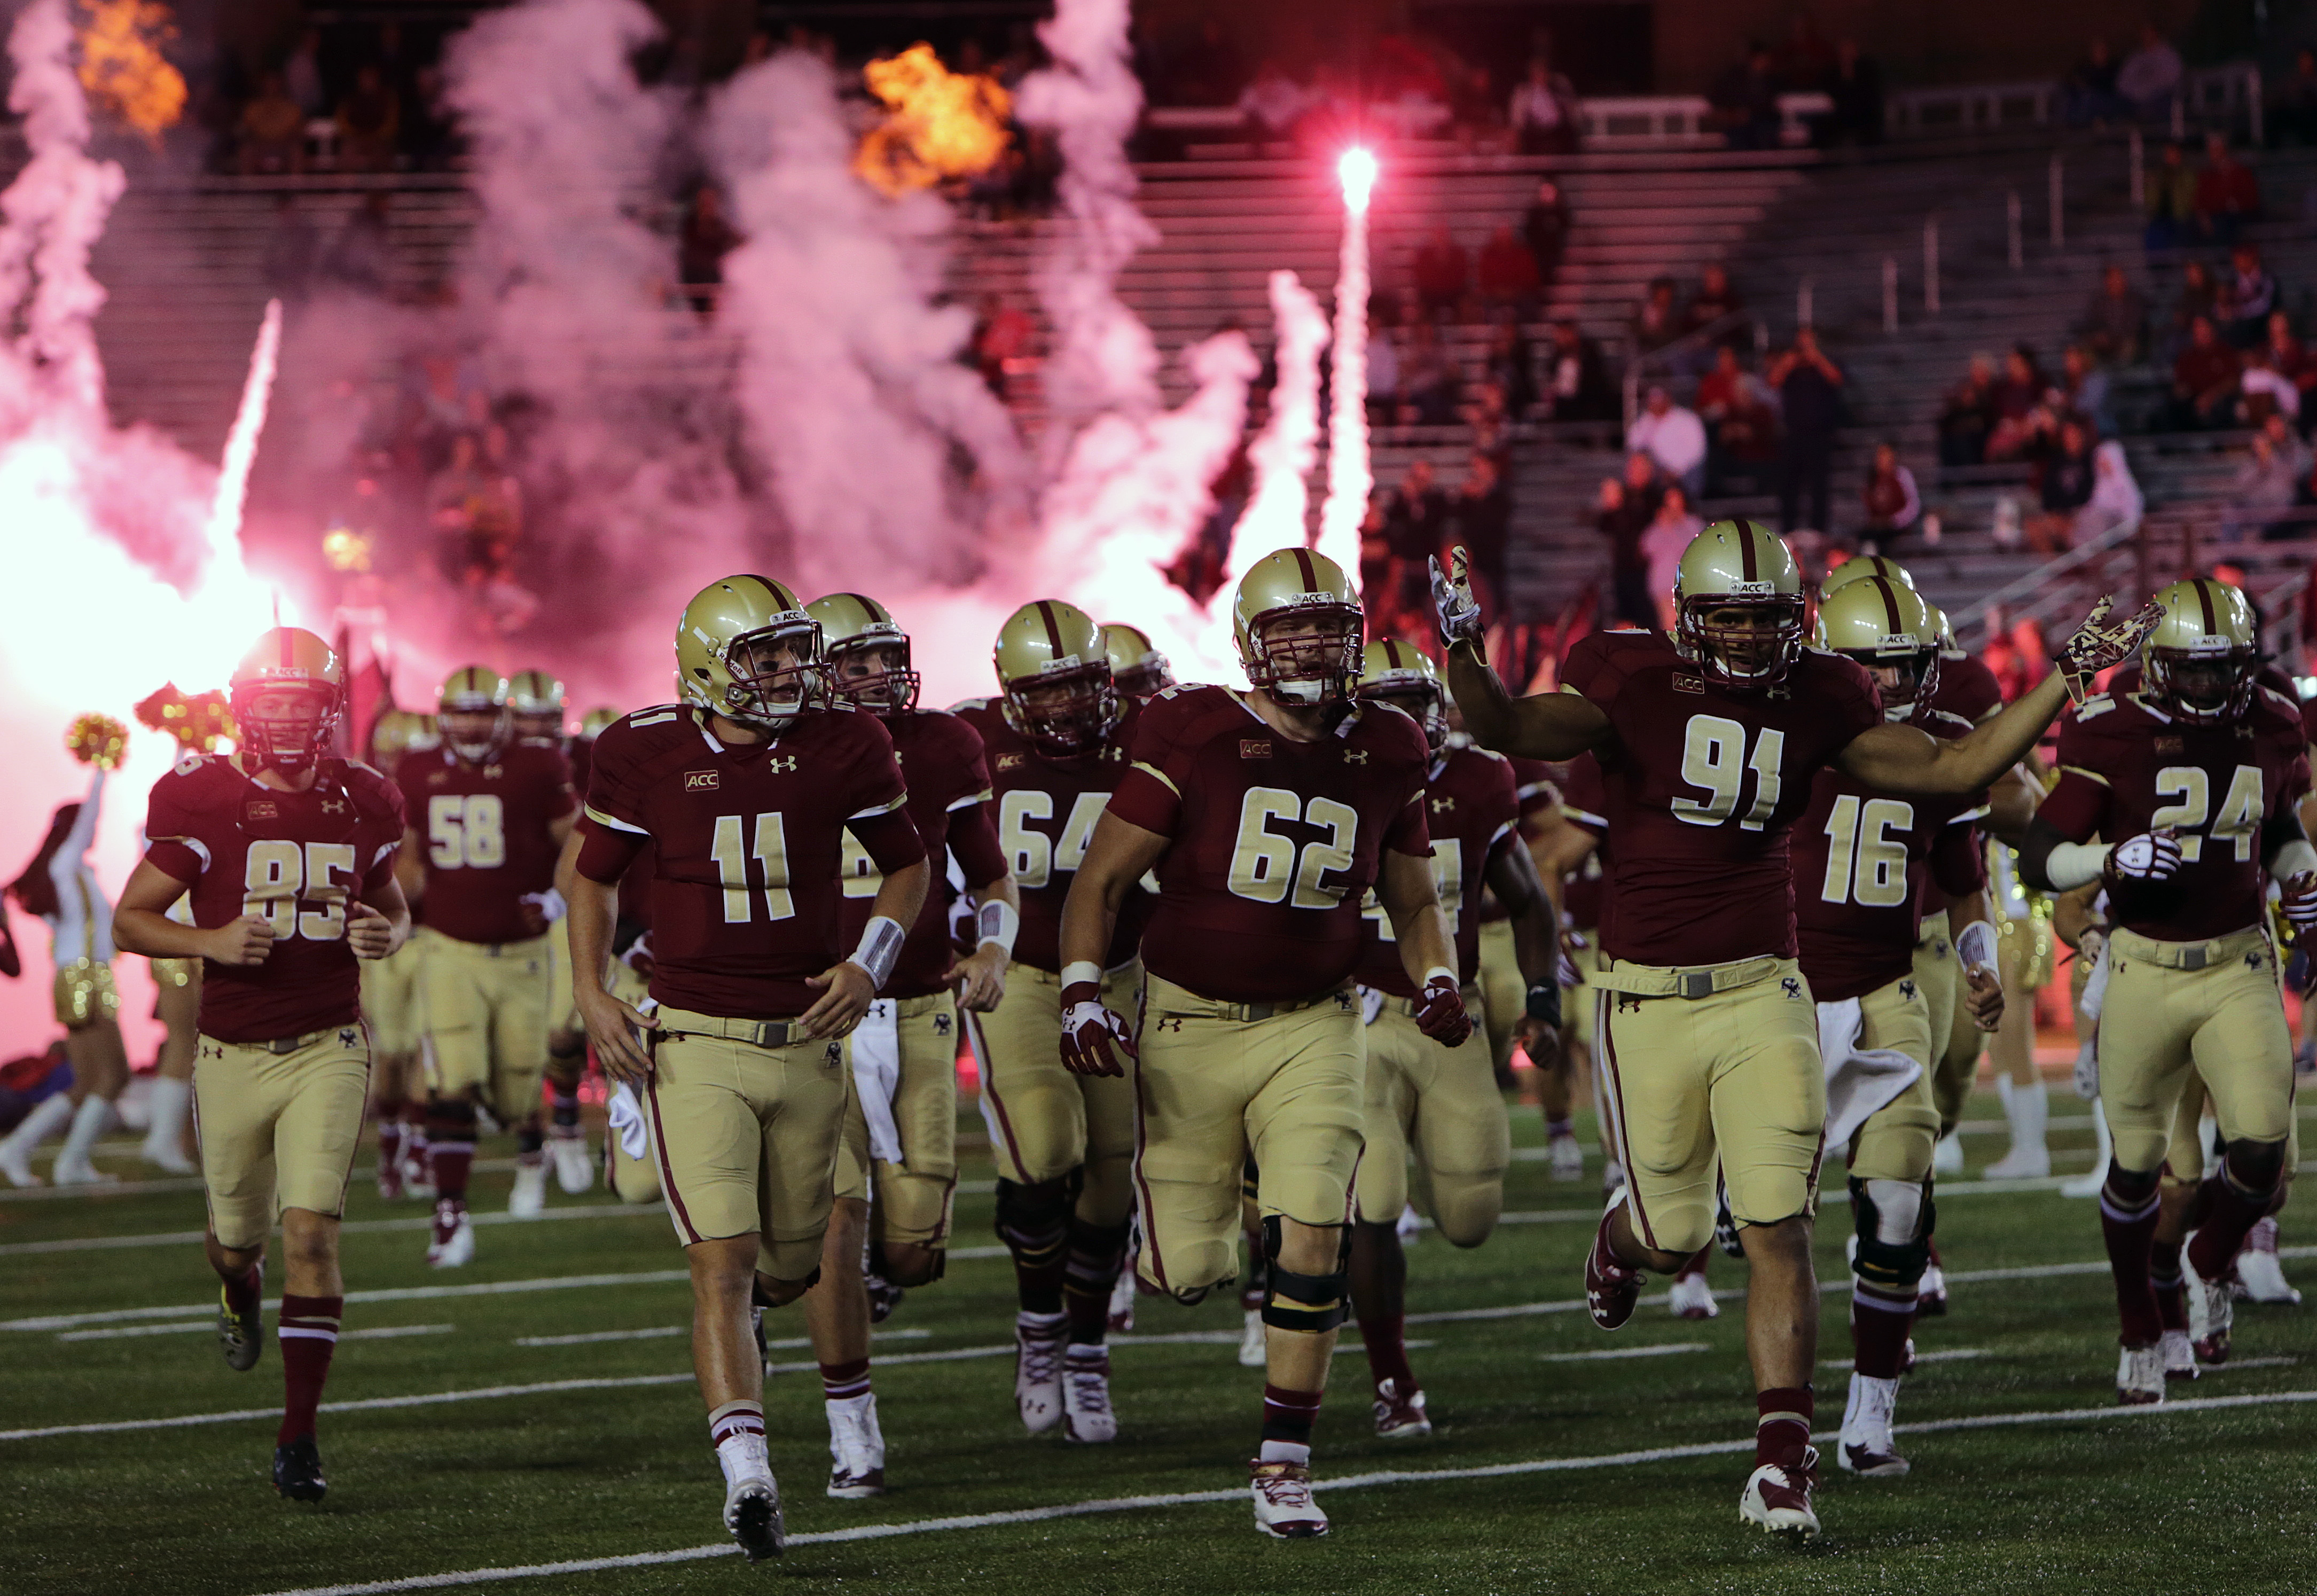 Boston College S Football Schedule Has Been Finalized The Boston Globe